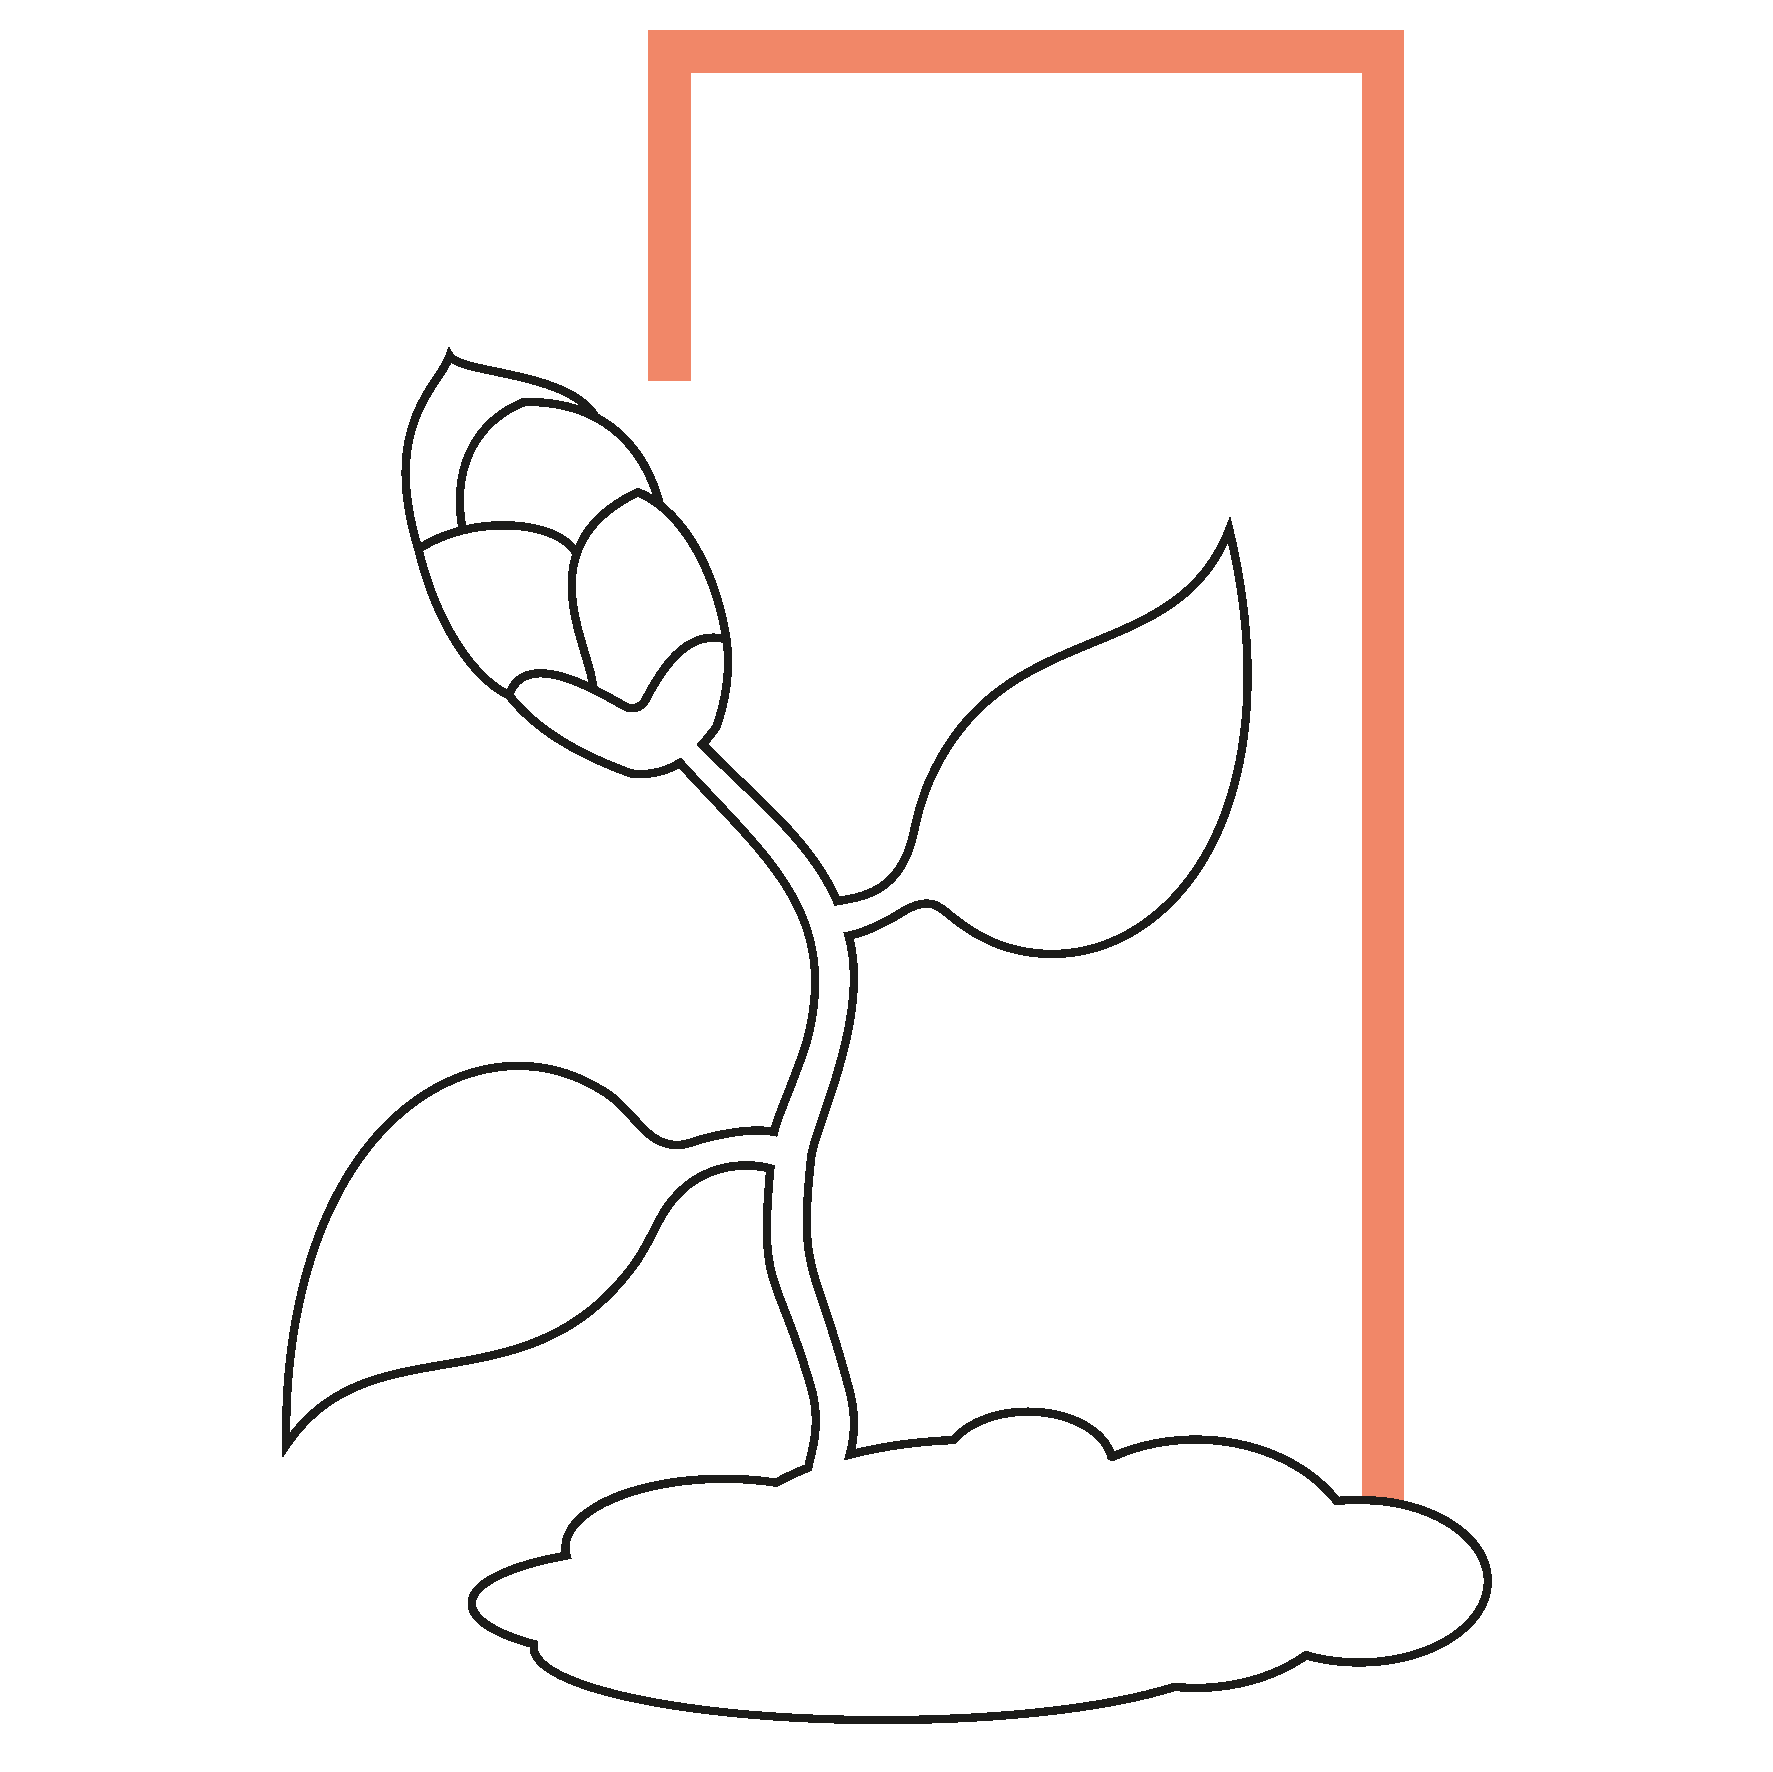 studio incubator pictogram of a bud growing in a frame growth branding positioning